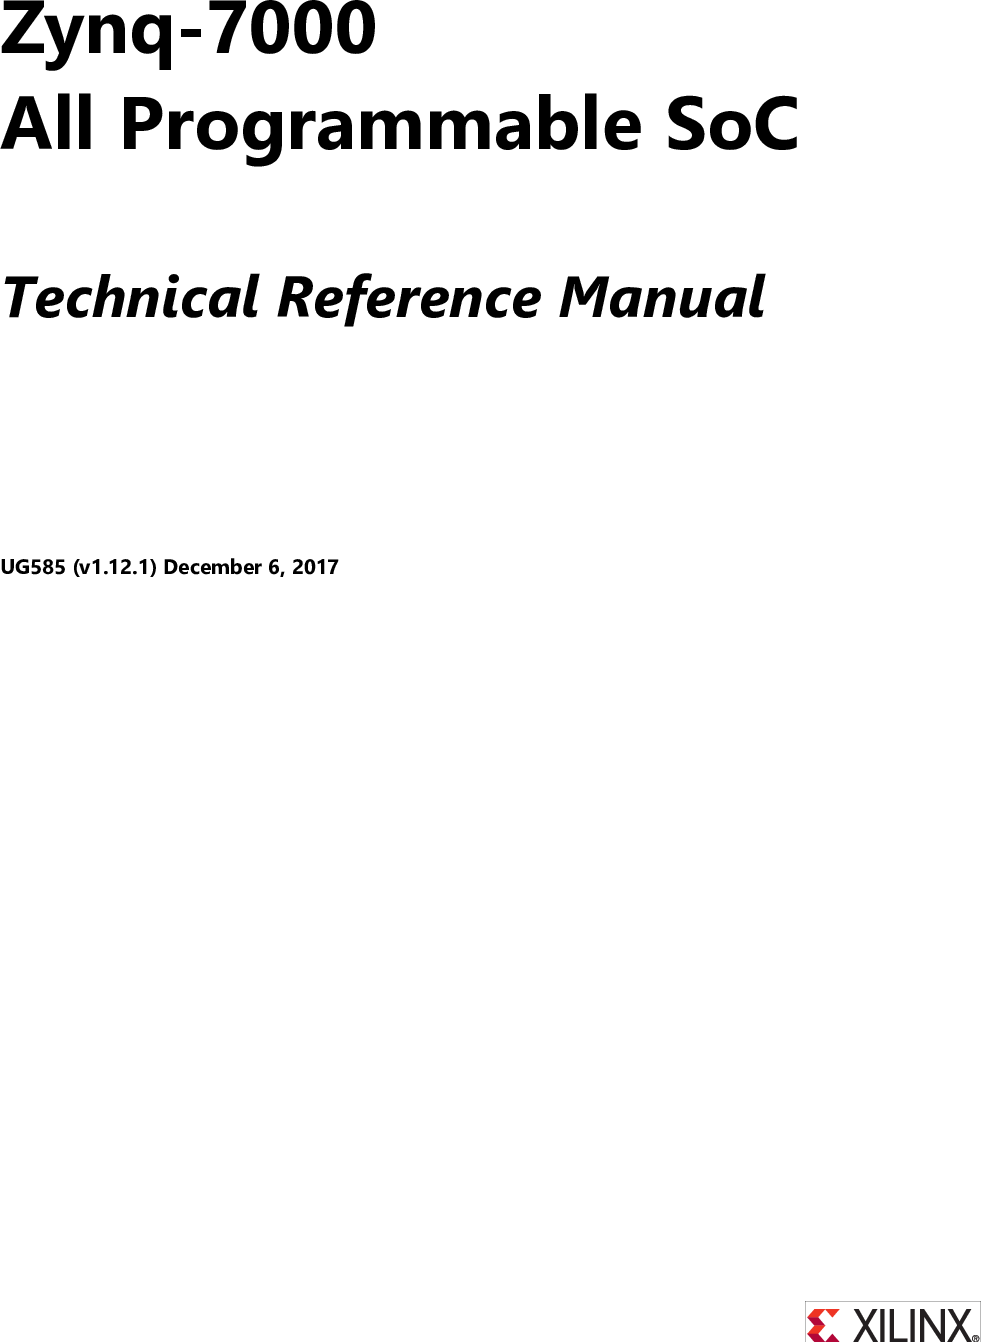 Zynq 7000 All Programmable SoC Technical Reference Manual